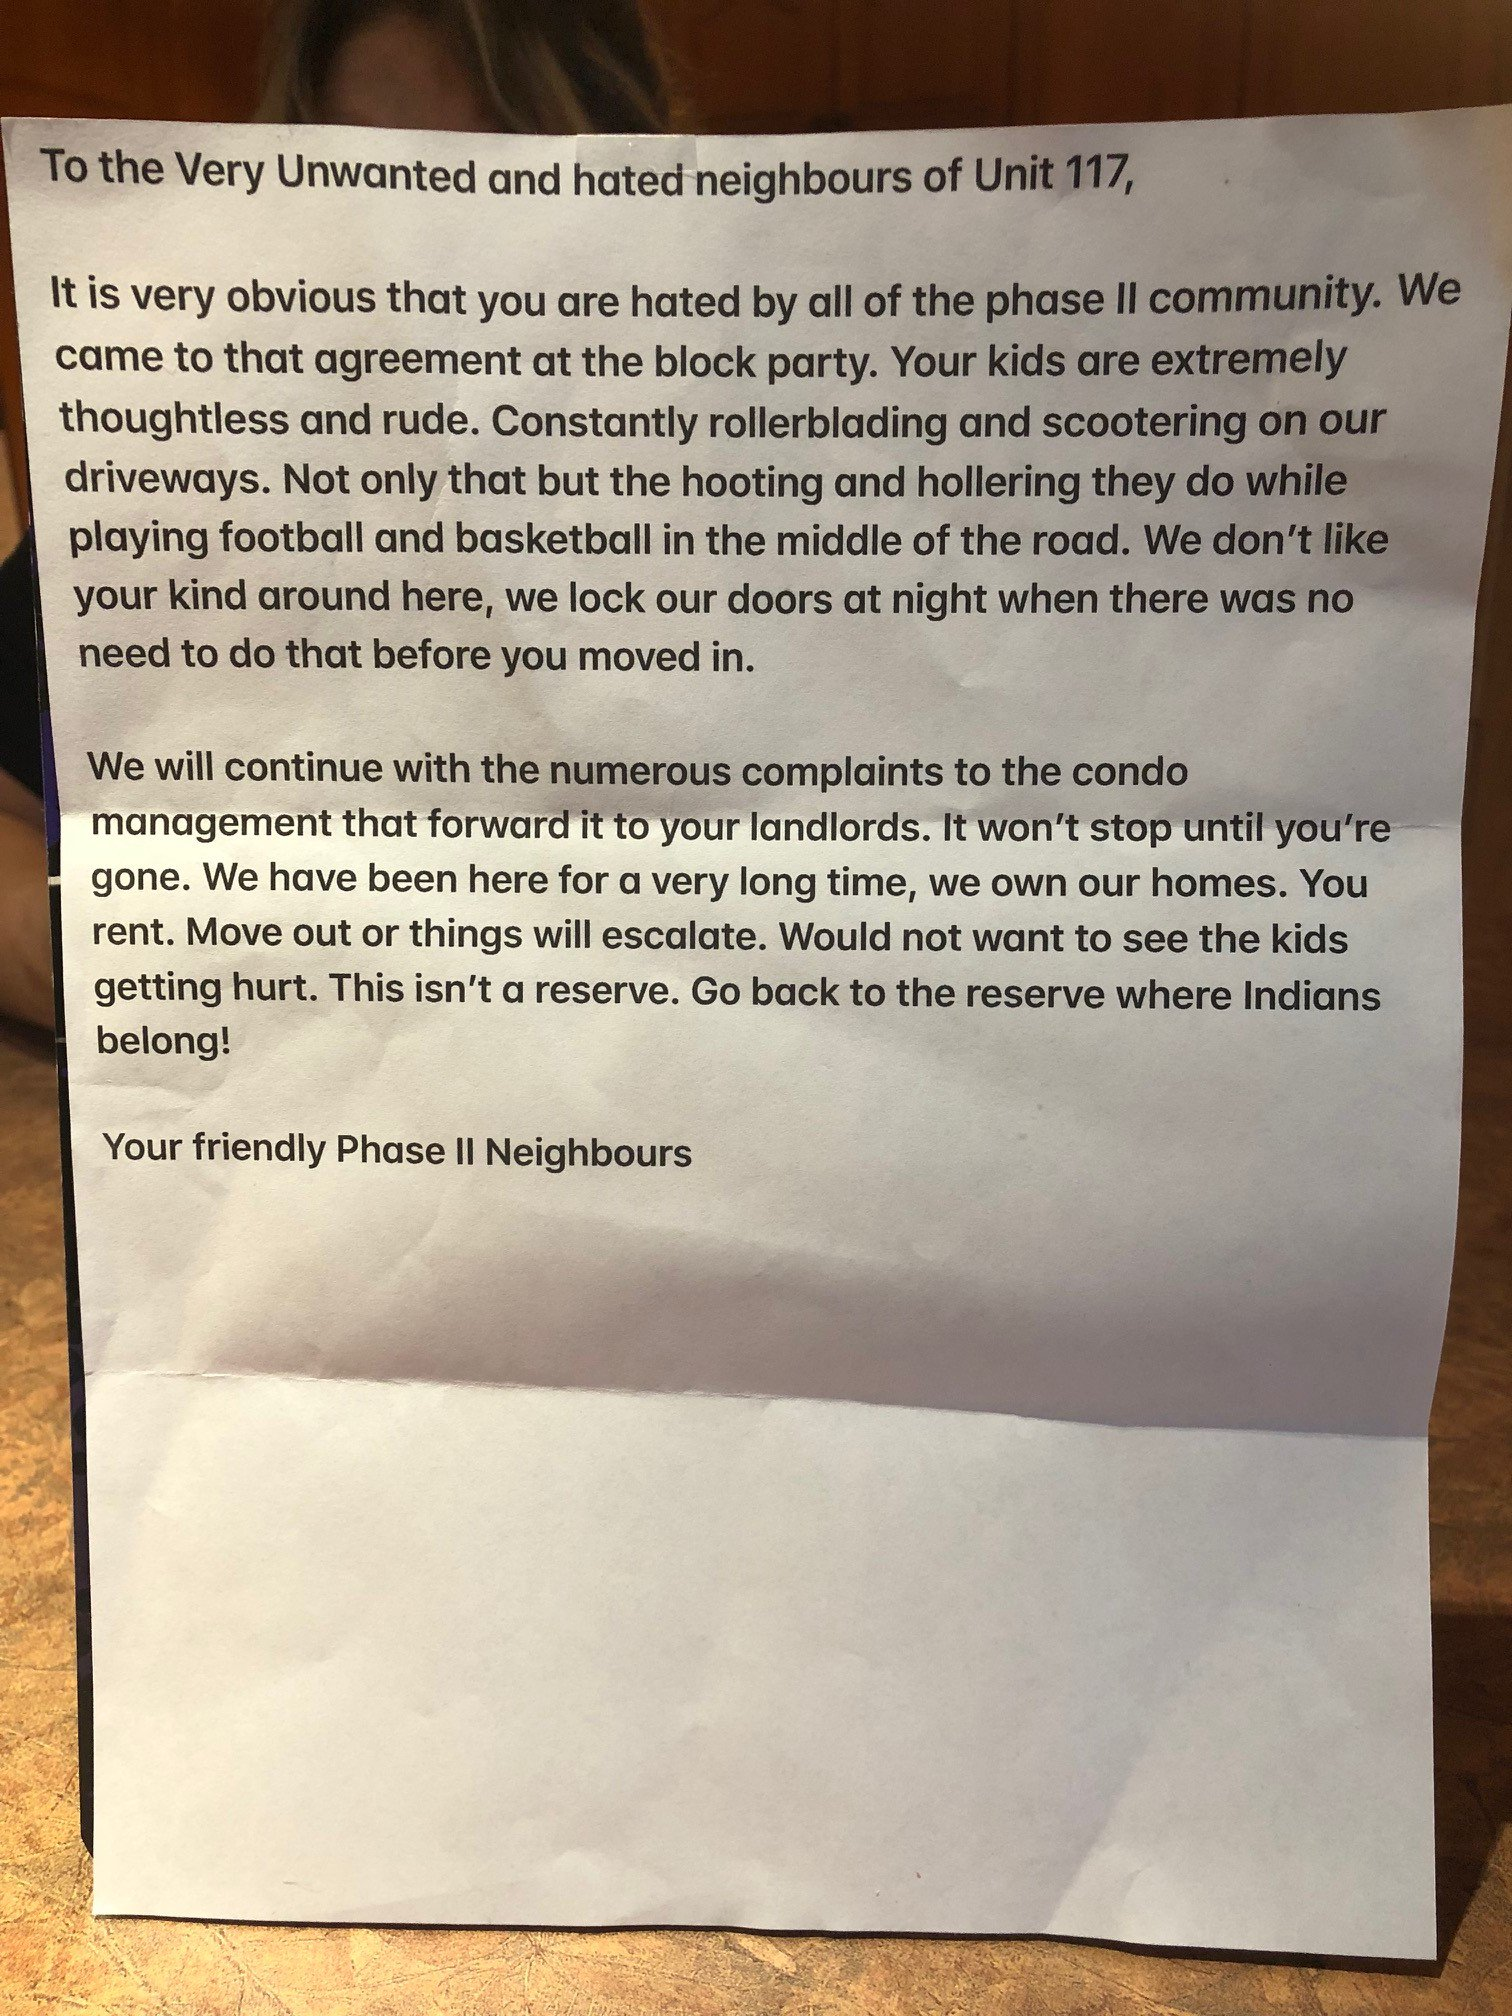 EDMONTON ESKIMOS PRESIDENT INVITES TARGETED ST. ALBERT FAMILY TO BE HIS PERSONAL GUESTS AT UPCOMING GAME